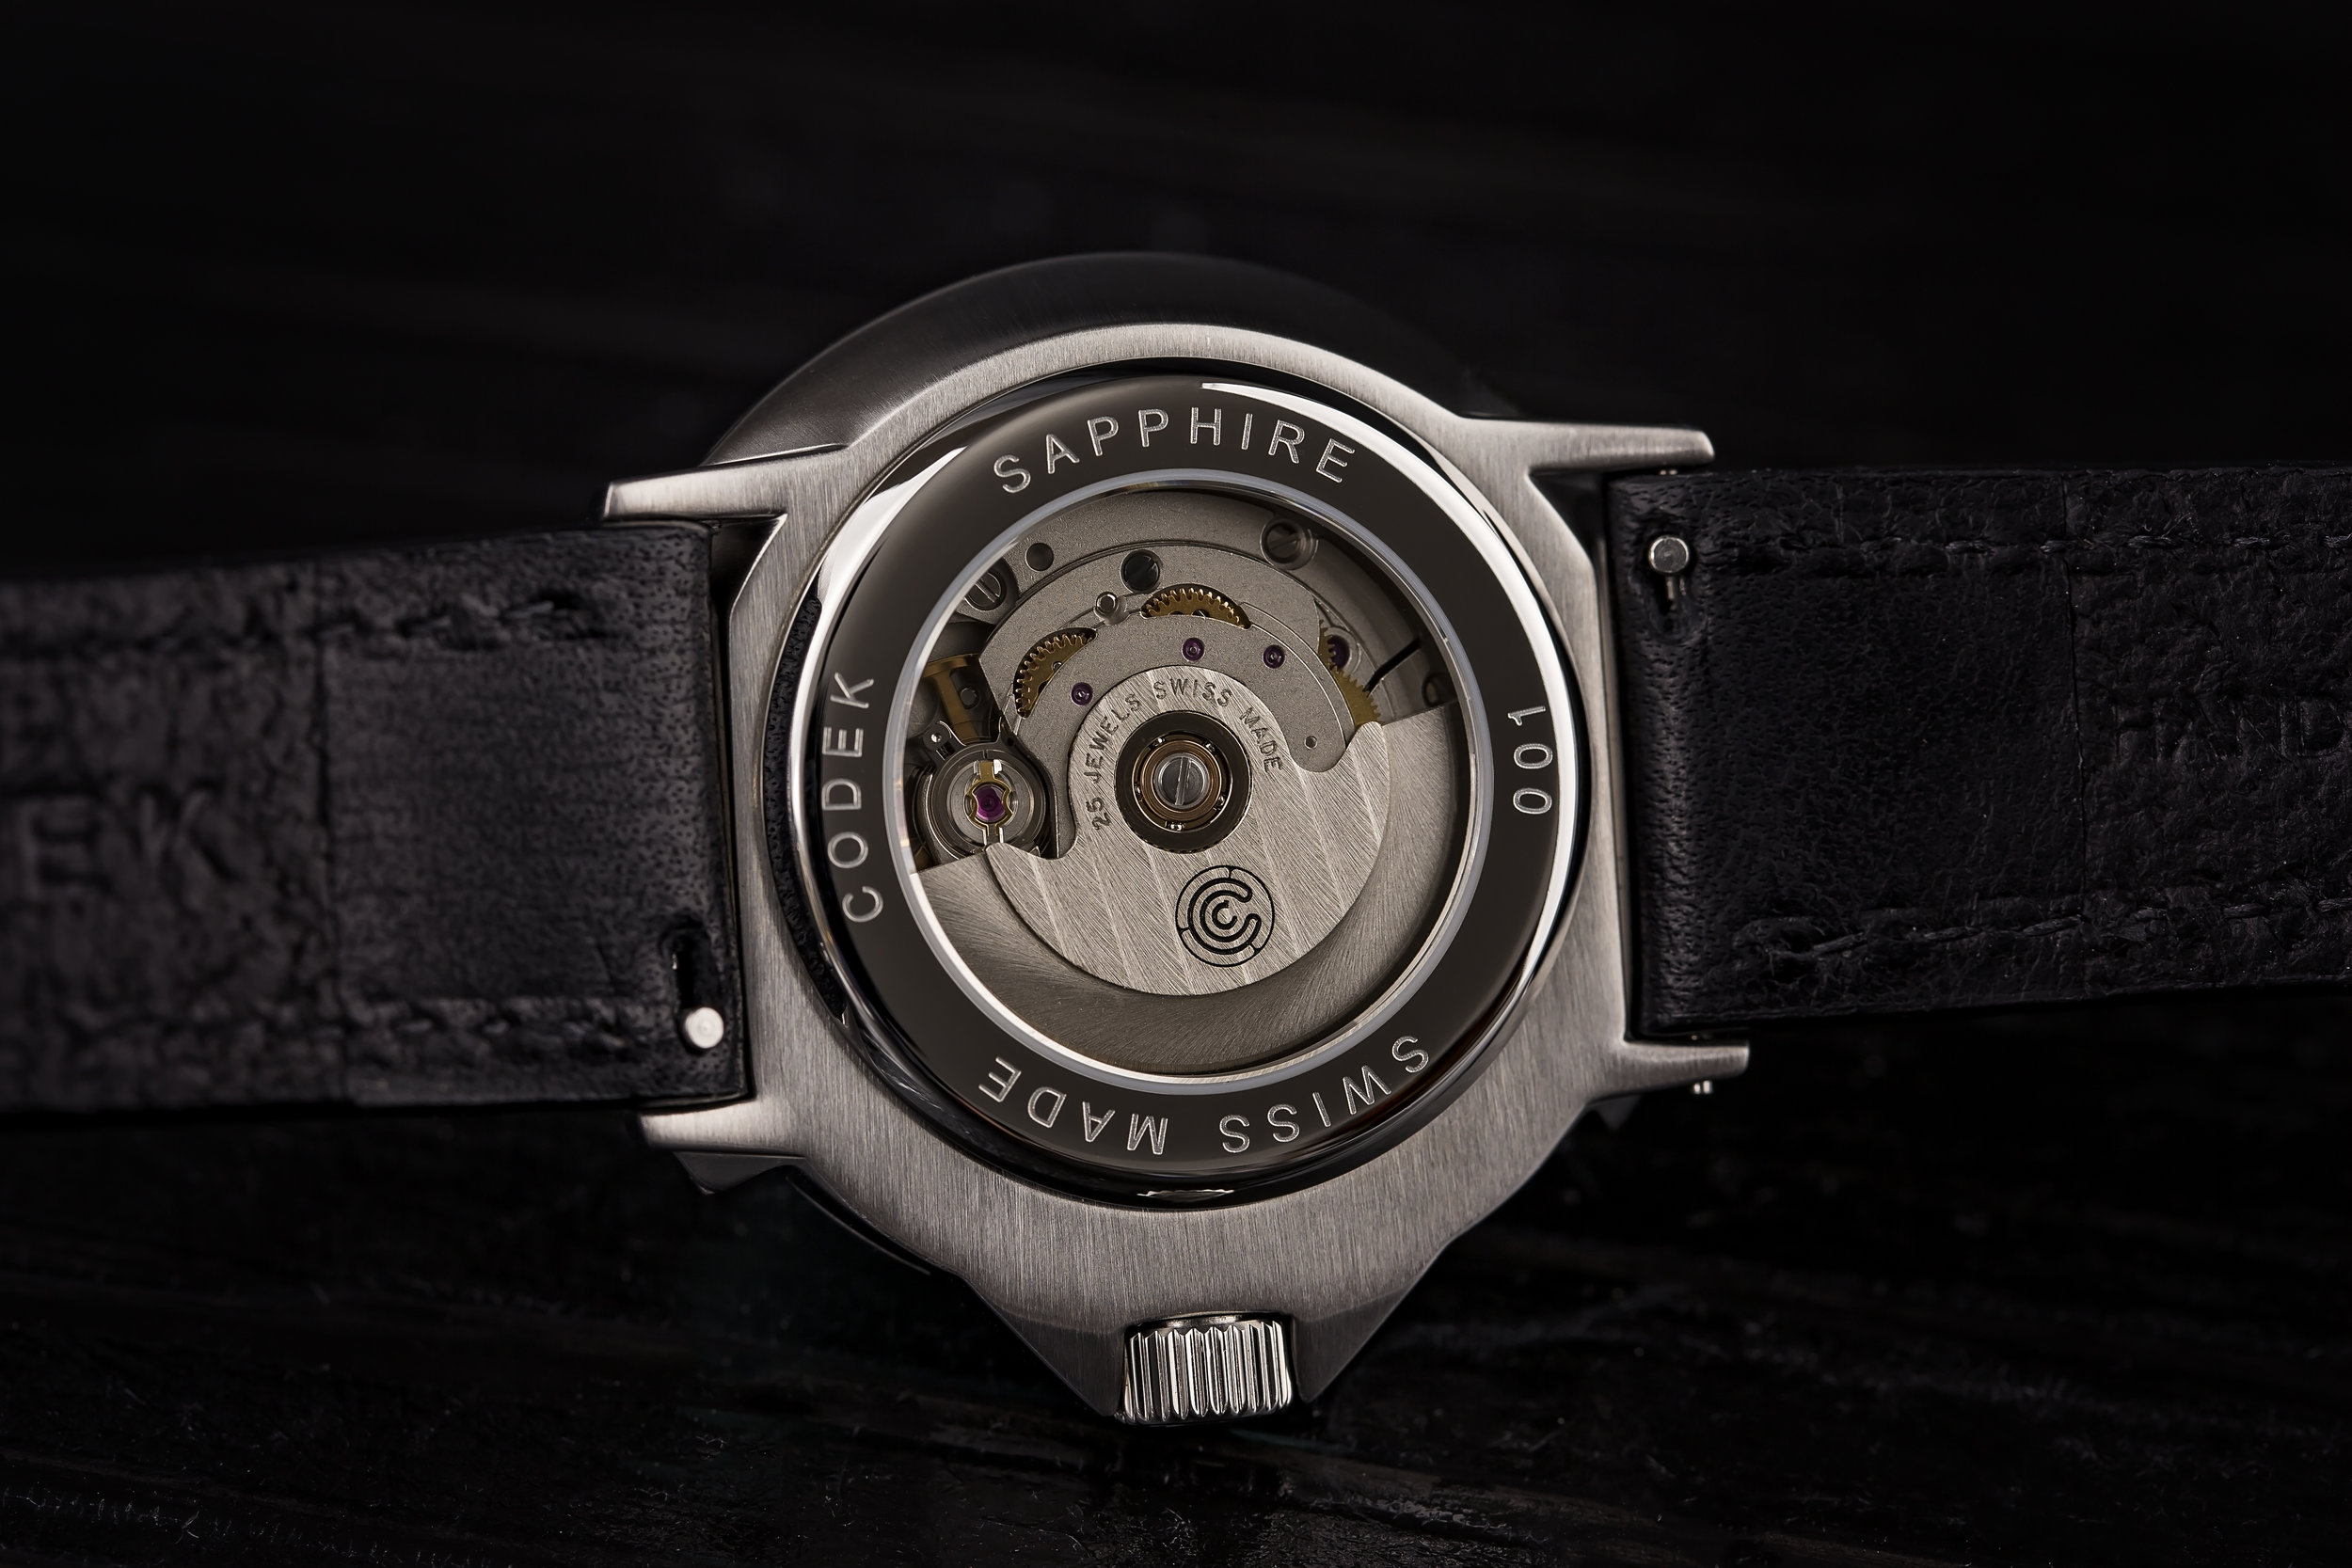 MOVEMENT - The reverse of the Spiral is equally attractive. It features a sapphire crystal display caseback encompassed with an engraved serial number. Peering through the glass is the engine of the spiral: the venerable ETA 2824 automatic movement.Each movement is tested and regulated in 3 positions by a watchmaker. The amplitude and beat error are also evaluated. On a full wind, the timing is expected to be within -5/+6 sec/day.